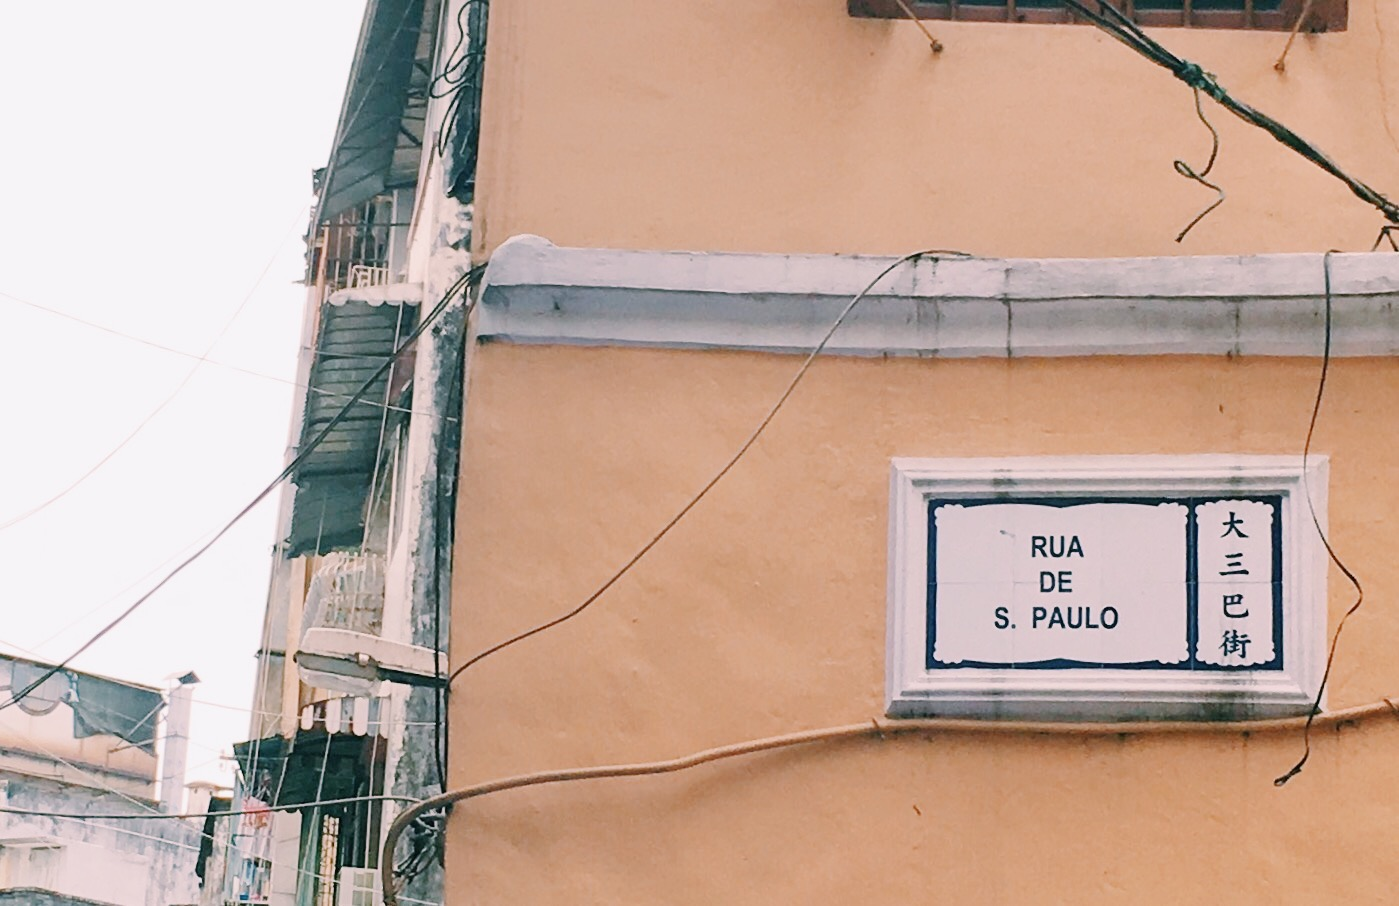 Street names are in both Mandarin/Cantonese and Portuguese.